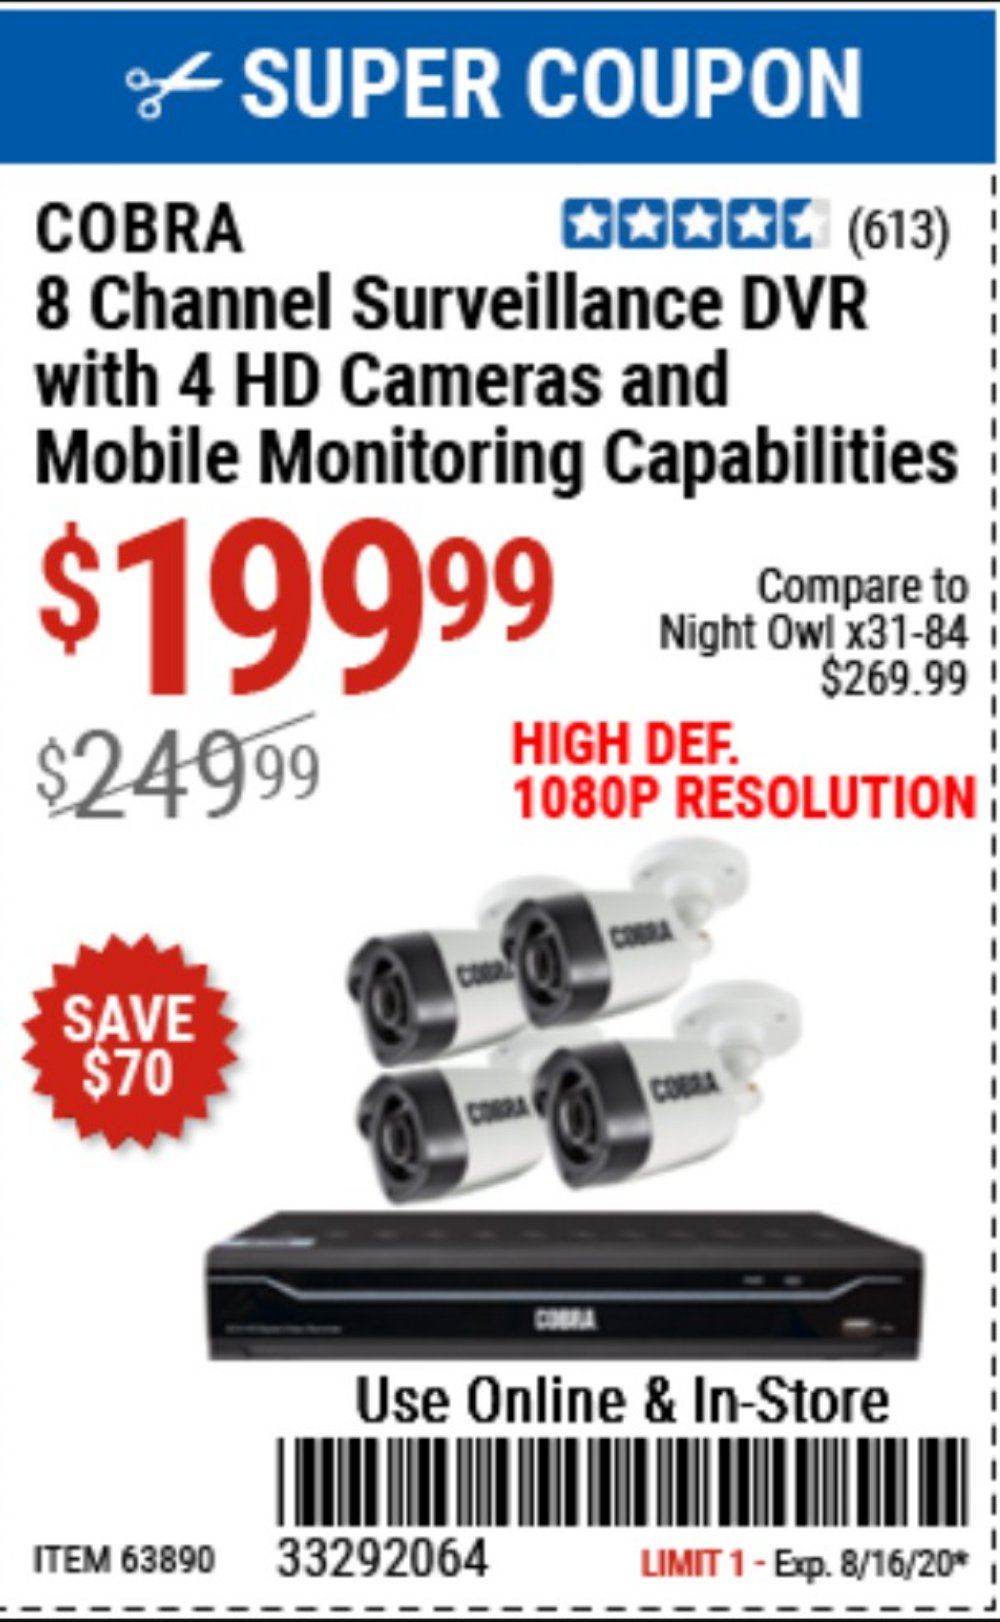 Harbor Freight Coupon, HF Coupons - 8 Channel Surveillance Dvr With 4 Hd Cameras And Mobile Monitoring Capabilities